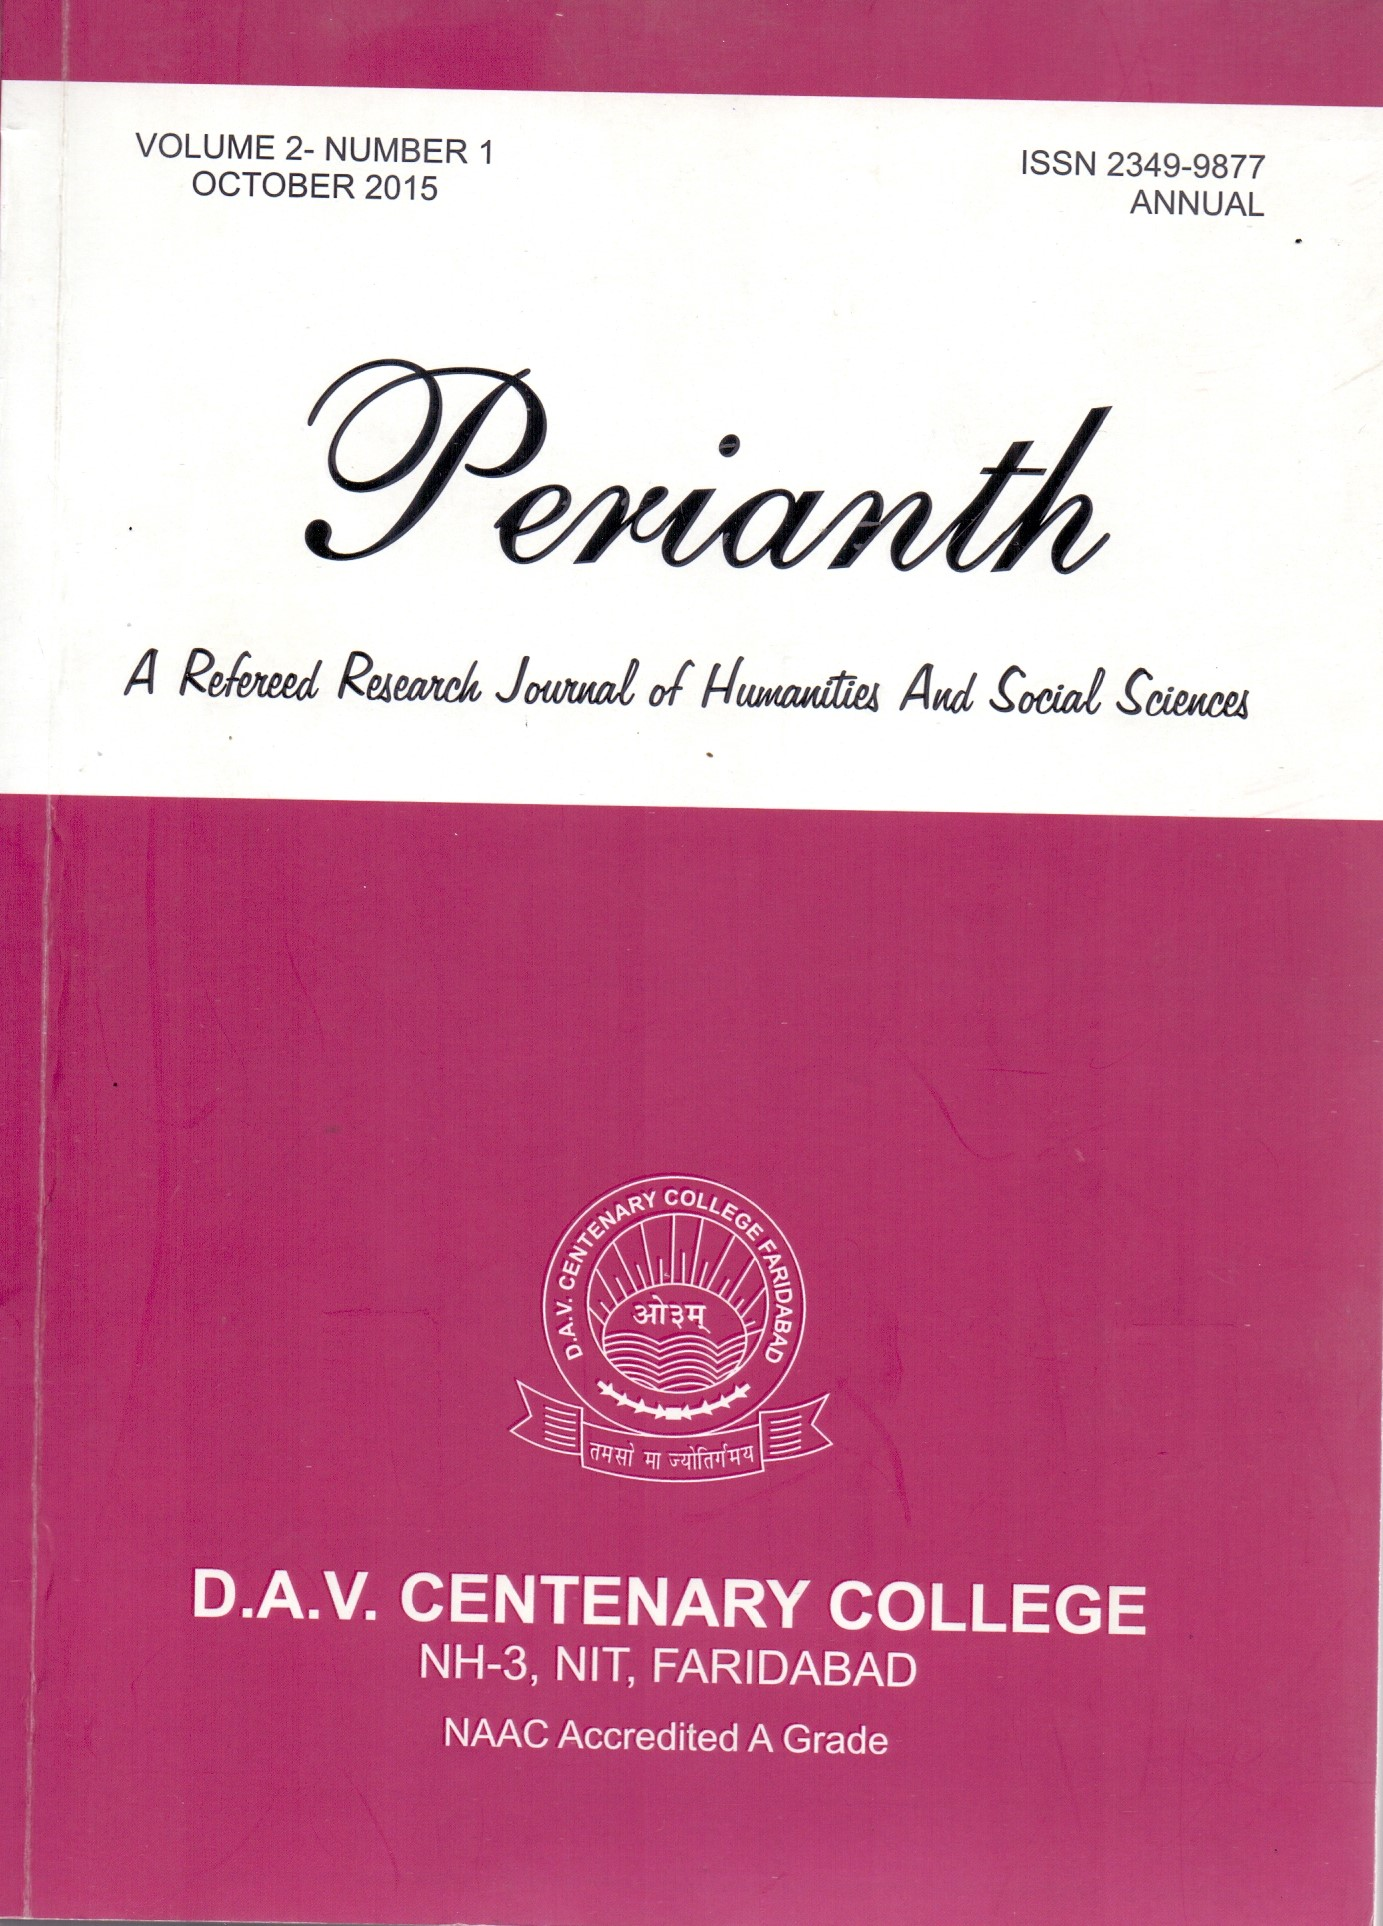 About Perianth Journal(Volume-2,Issue-1)